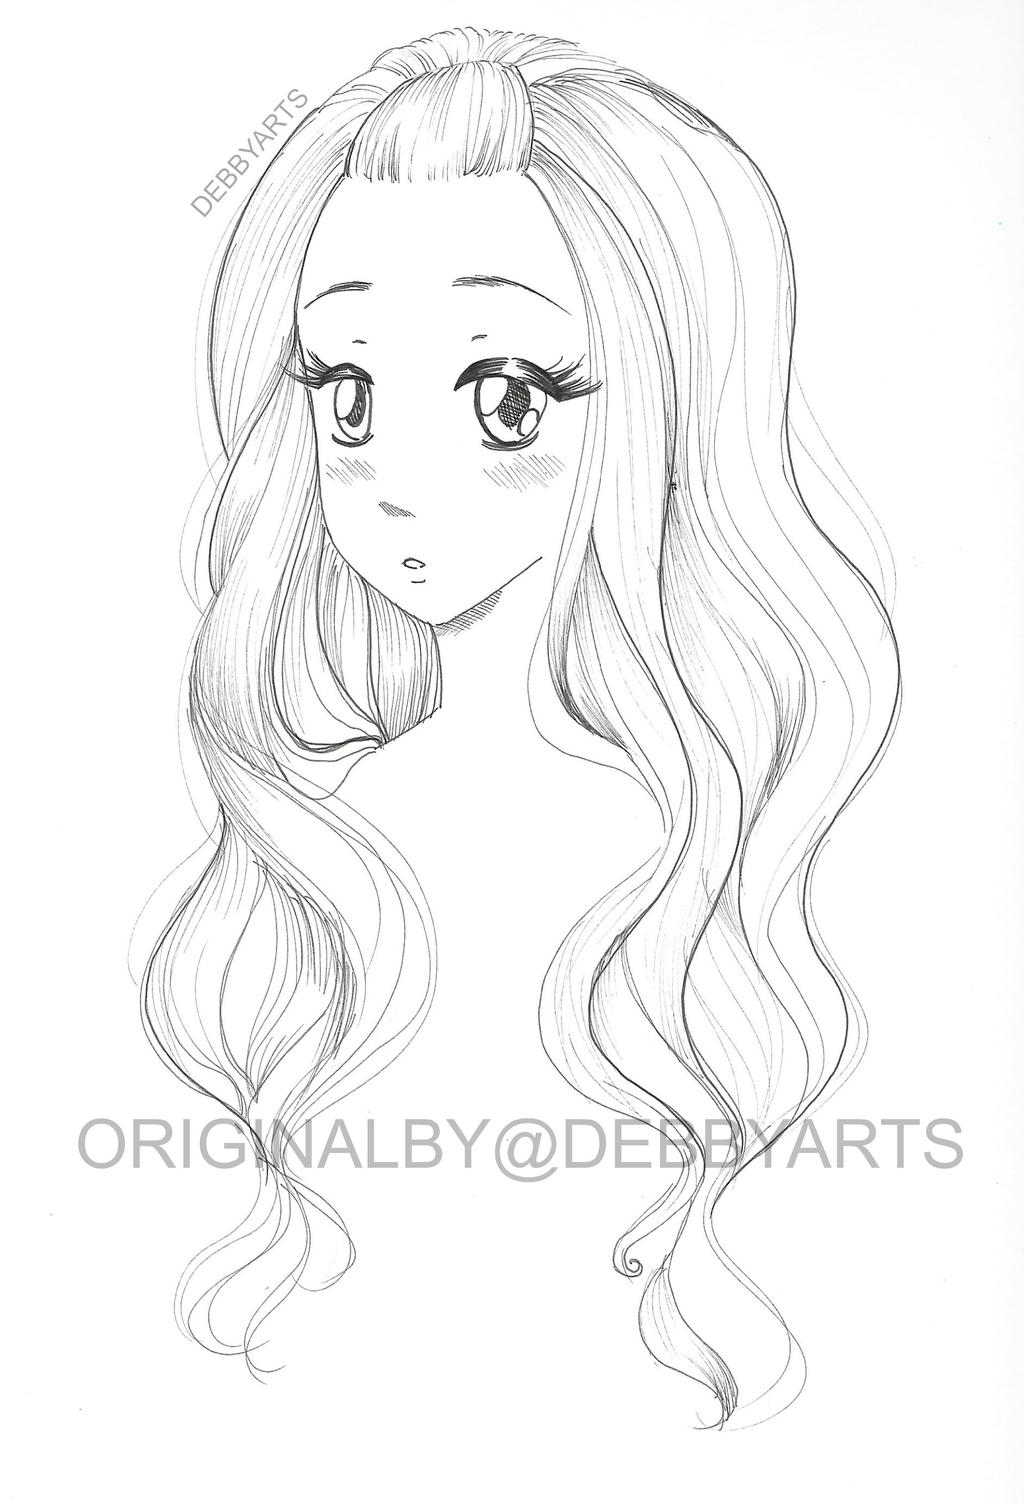 Hair colouring drawing free download by debbyarts on for Sketch online free